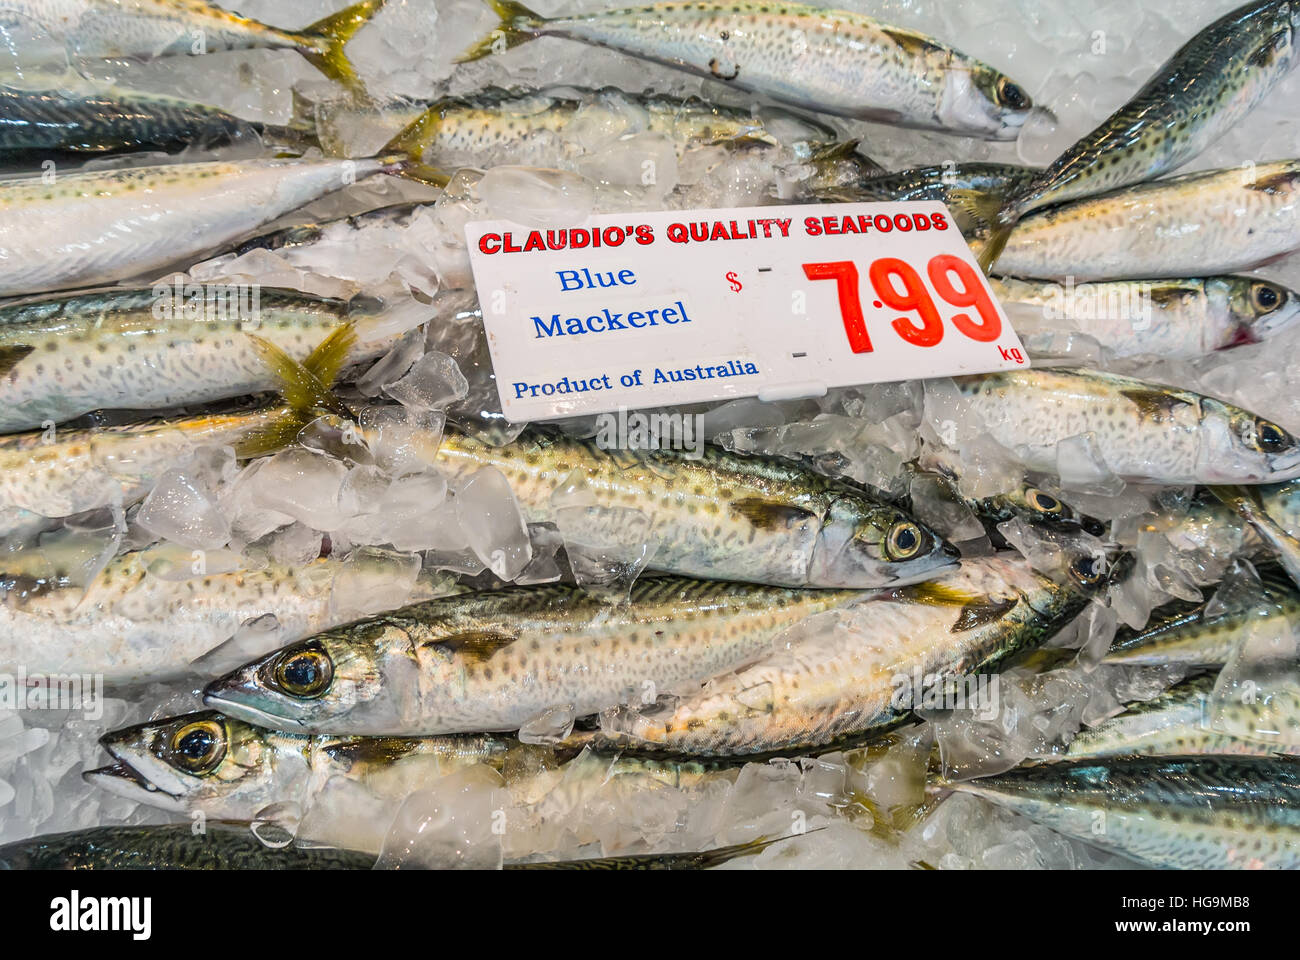 how to get sydney fish market